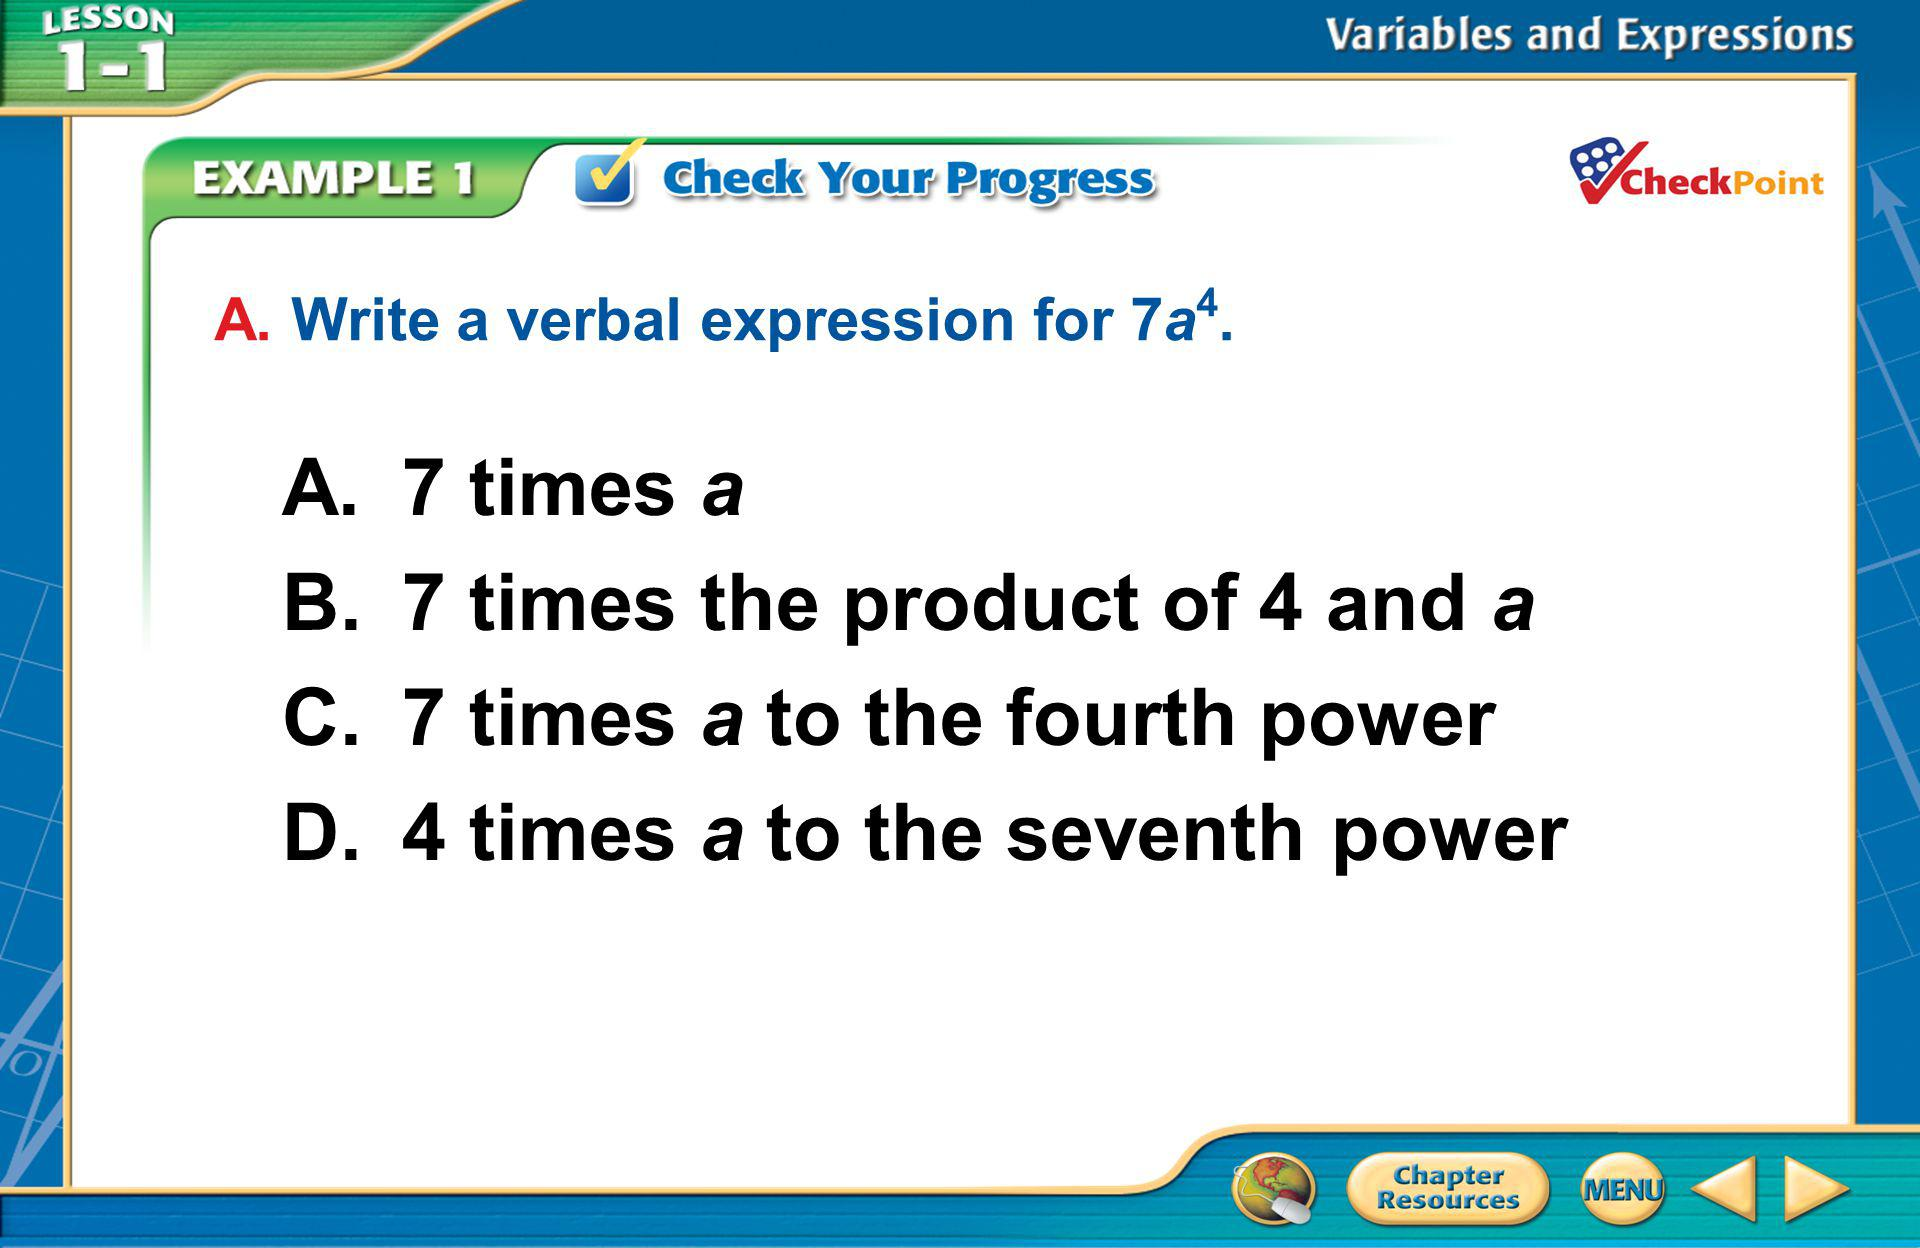 [Enter question here] A.7 times a B.7 times the product of 4 and a C.7 times a to the fourth power D.4 times a to the seventh power A.